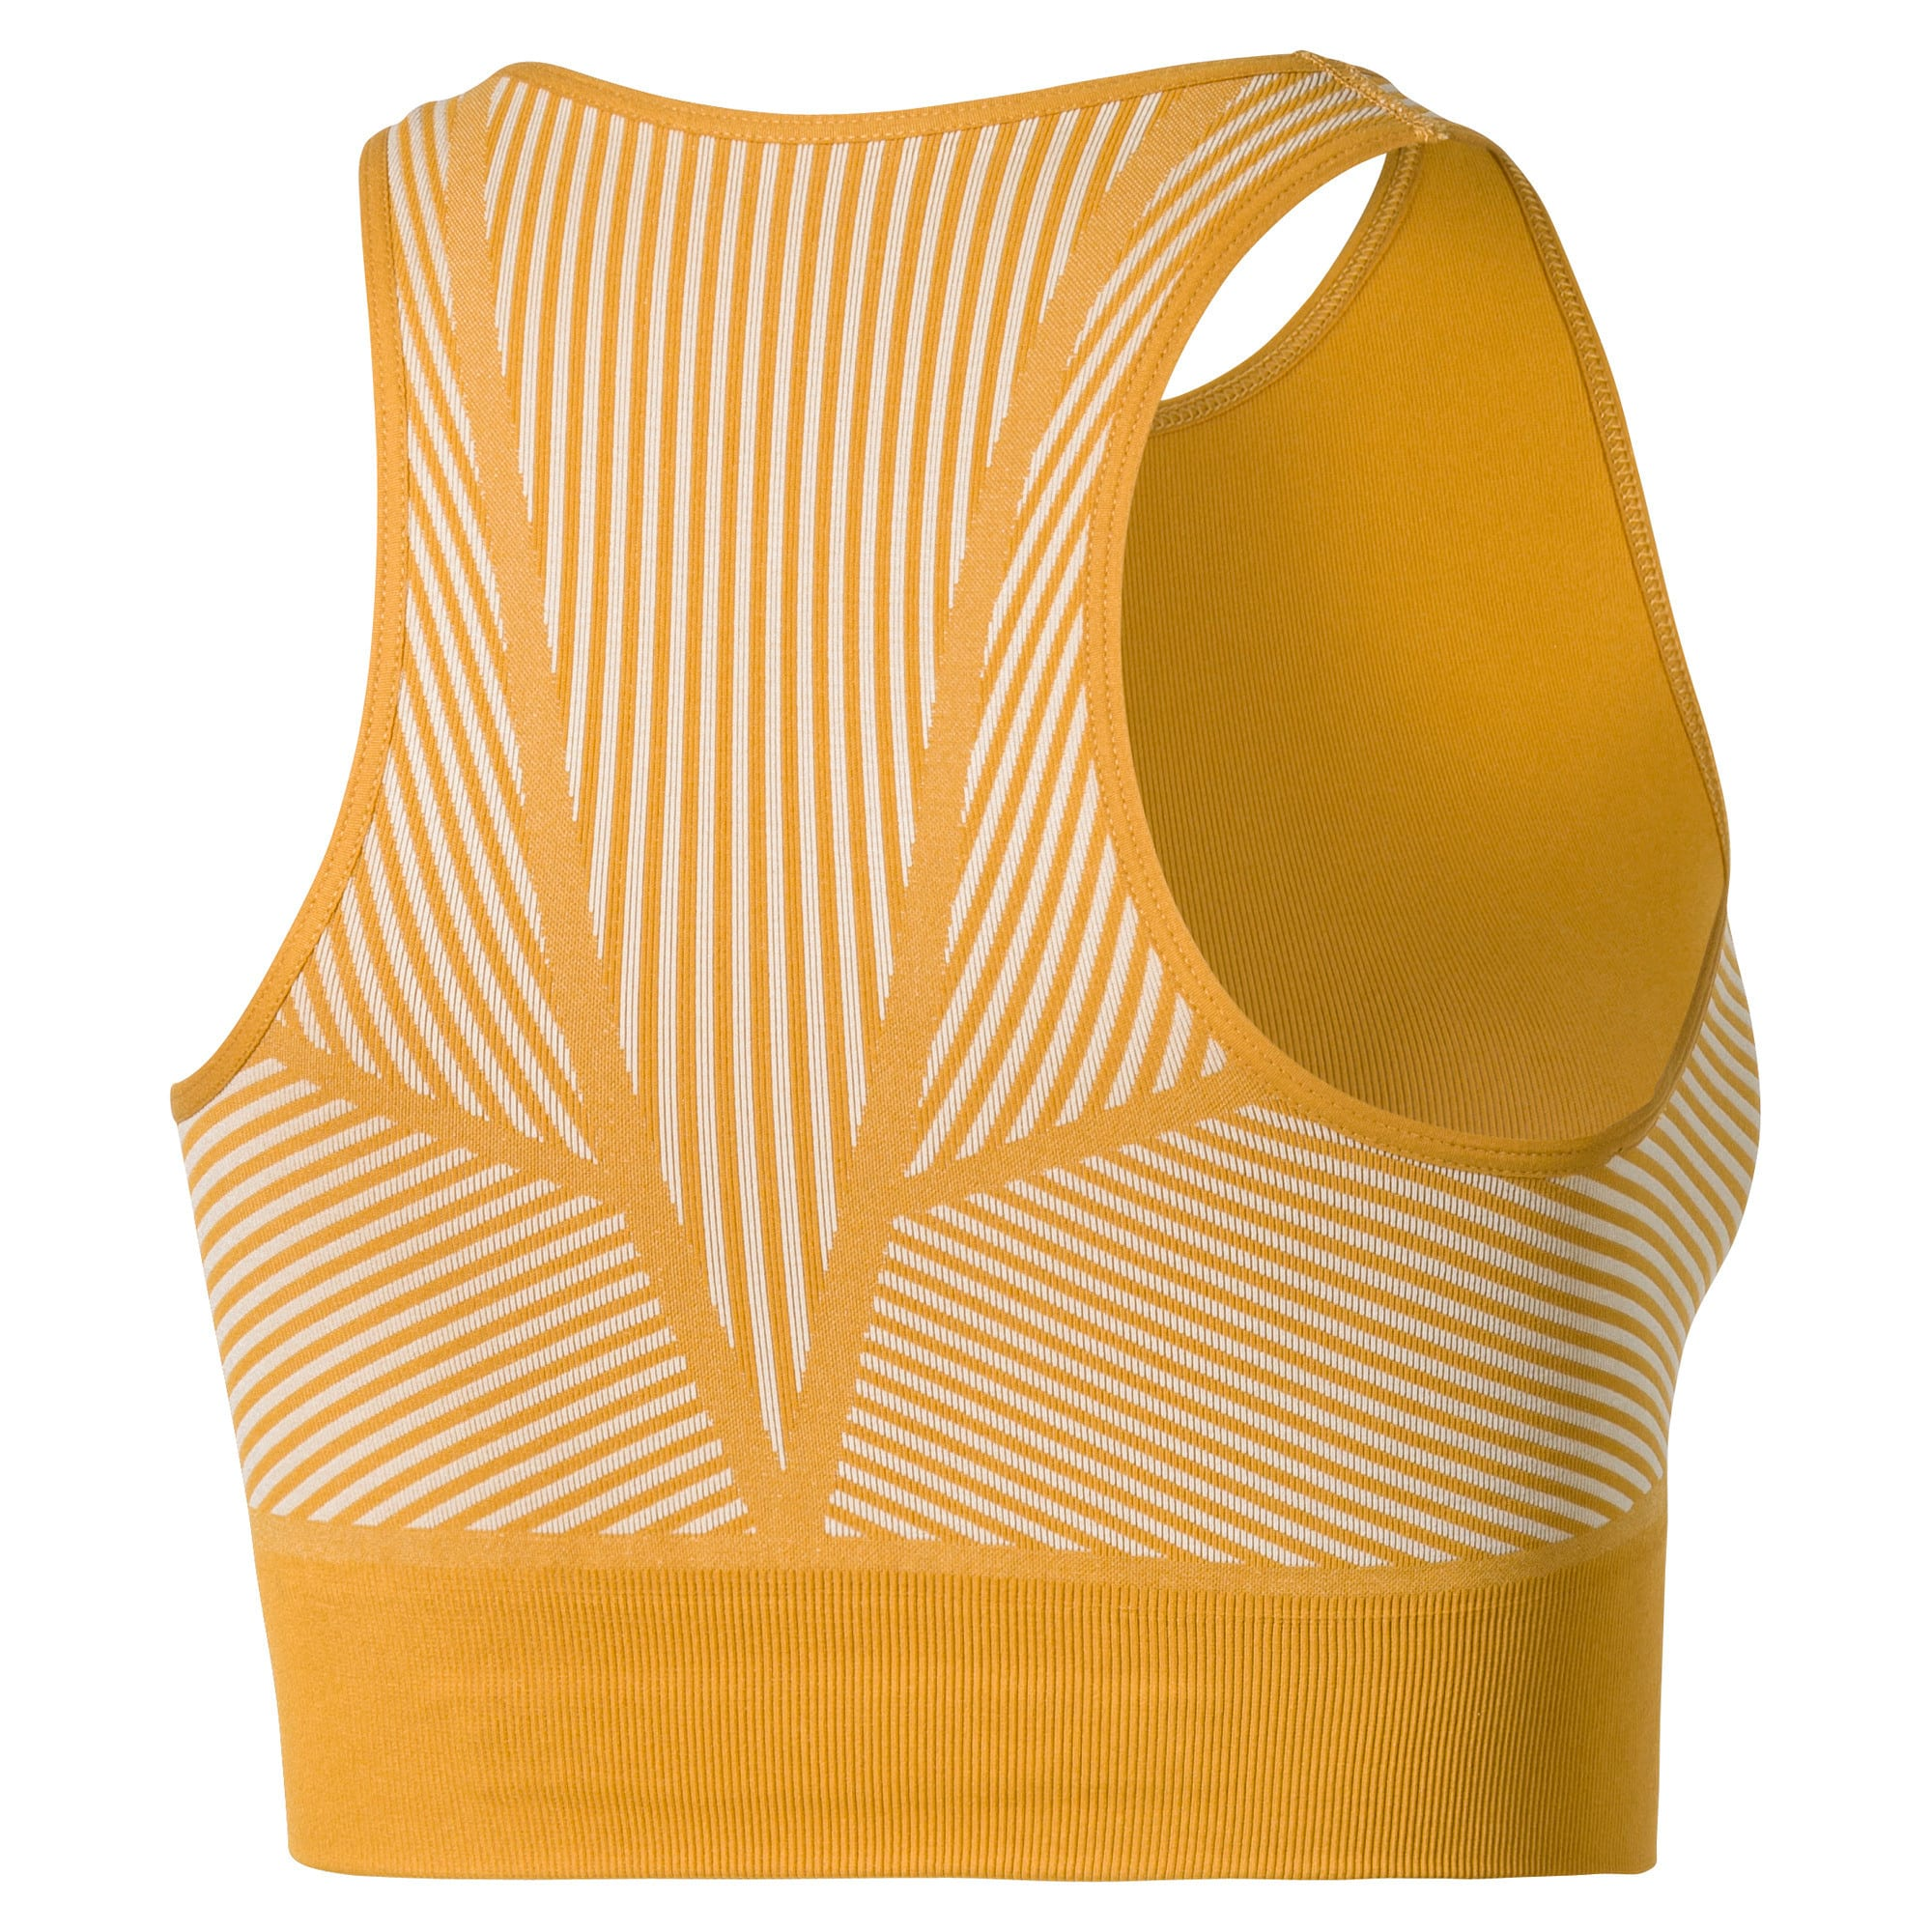 Thumbnail 2 of Seamless Women's Crop Top, Chai Tea-Oatmeal, medium